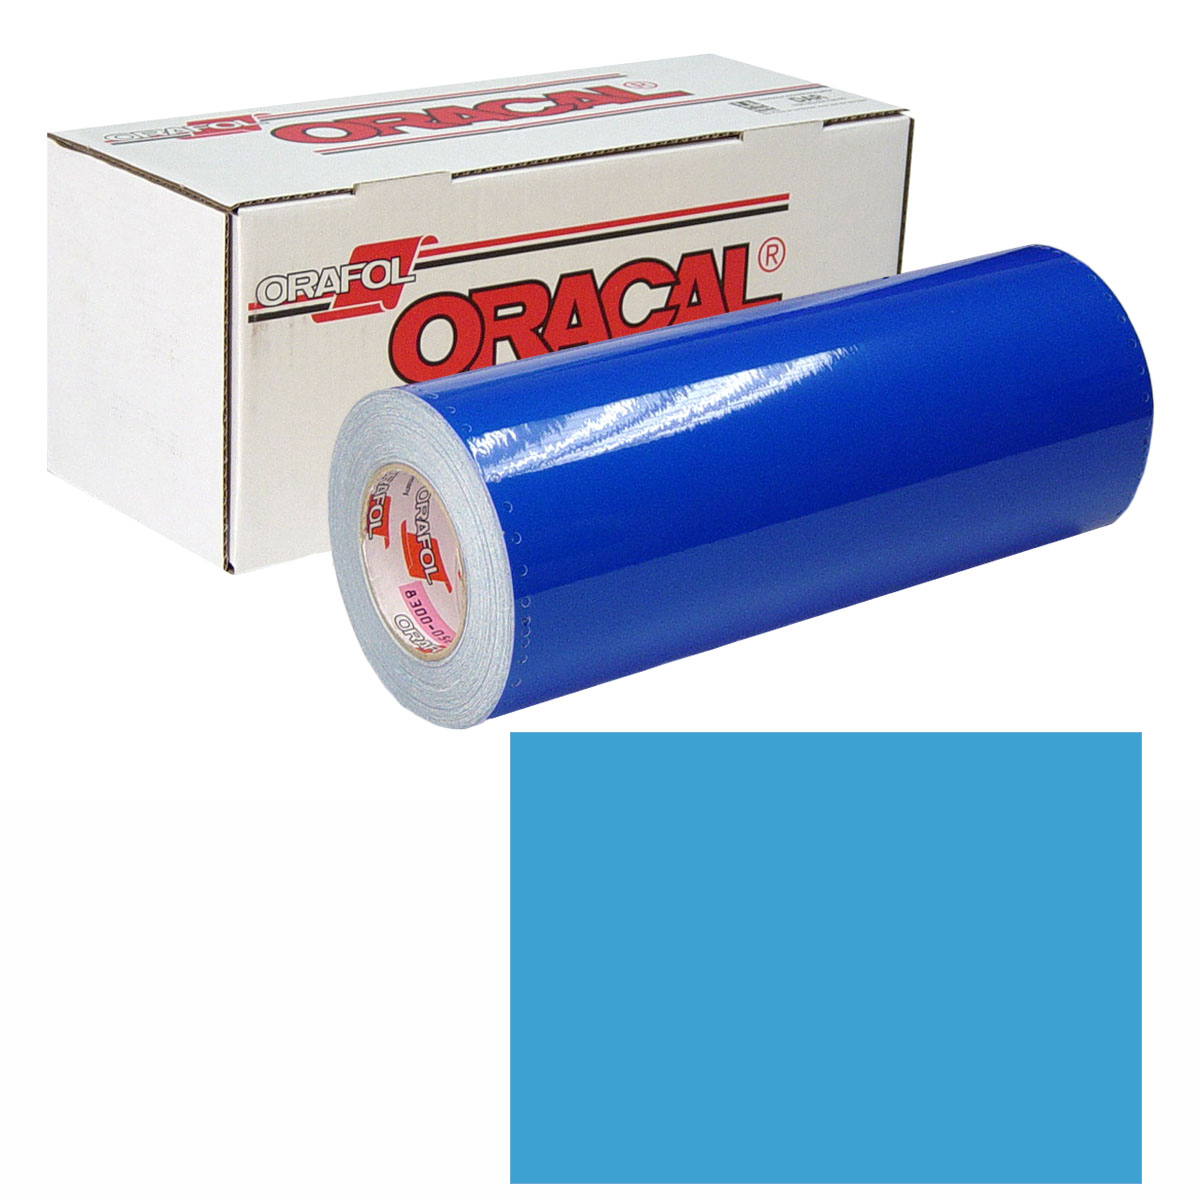 ORACAL 631 Unp 24In X 10Yd 056 Ice Blue